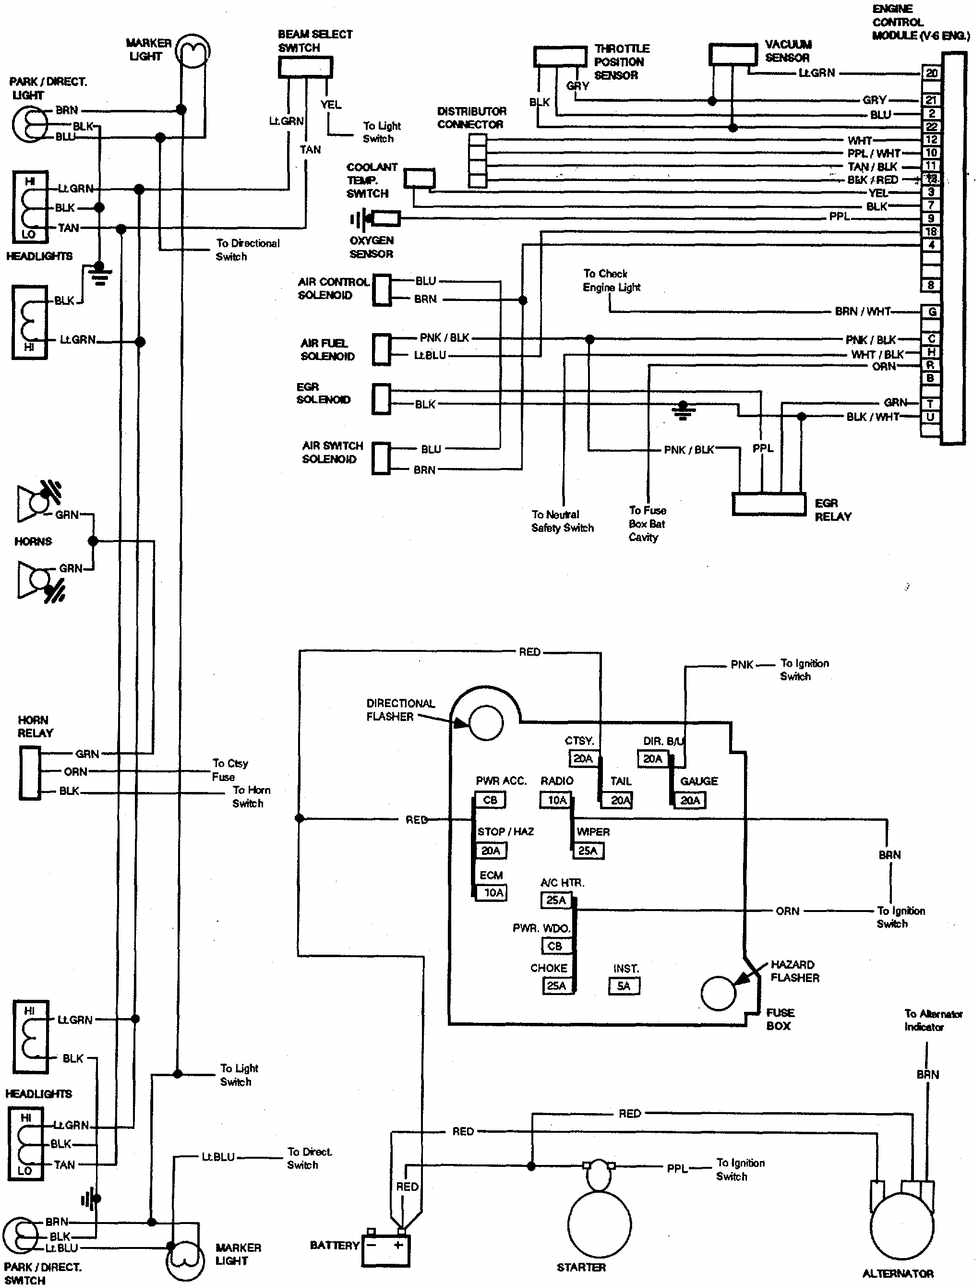 1984 nissan pick up wiring diagram with Chevrolet V8 Trucks 1981 1987 on 96 Dodge Dakota Fuse Diagram in addition RepairGuideContent together with 1986 Nissan Pulsar Nx Interior Wiring Diagrams moreover Honda Prelude Programmed Ignition Pgm Ig System Circuit And Wiring in addition 94 Chevy Truck Gas Tank Wiring Diagram.